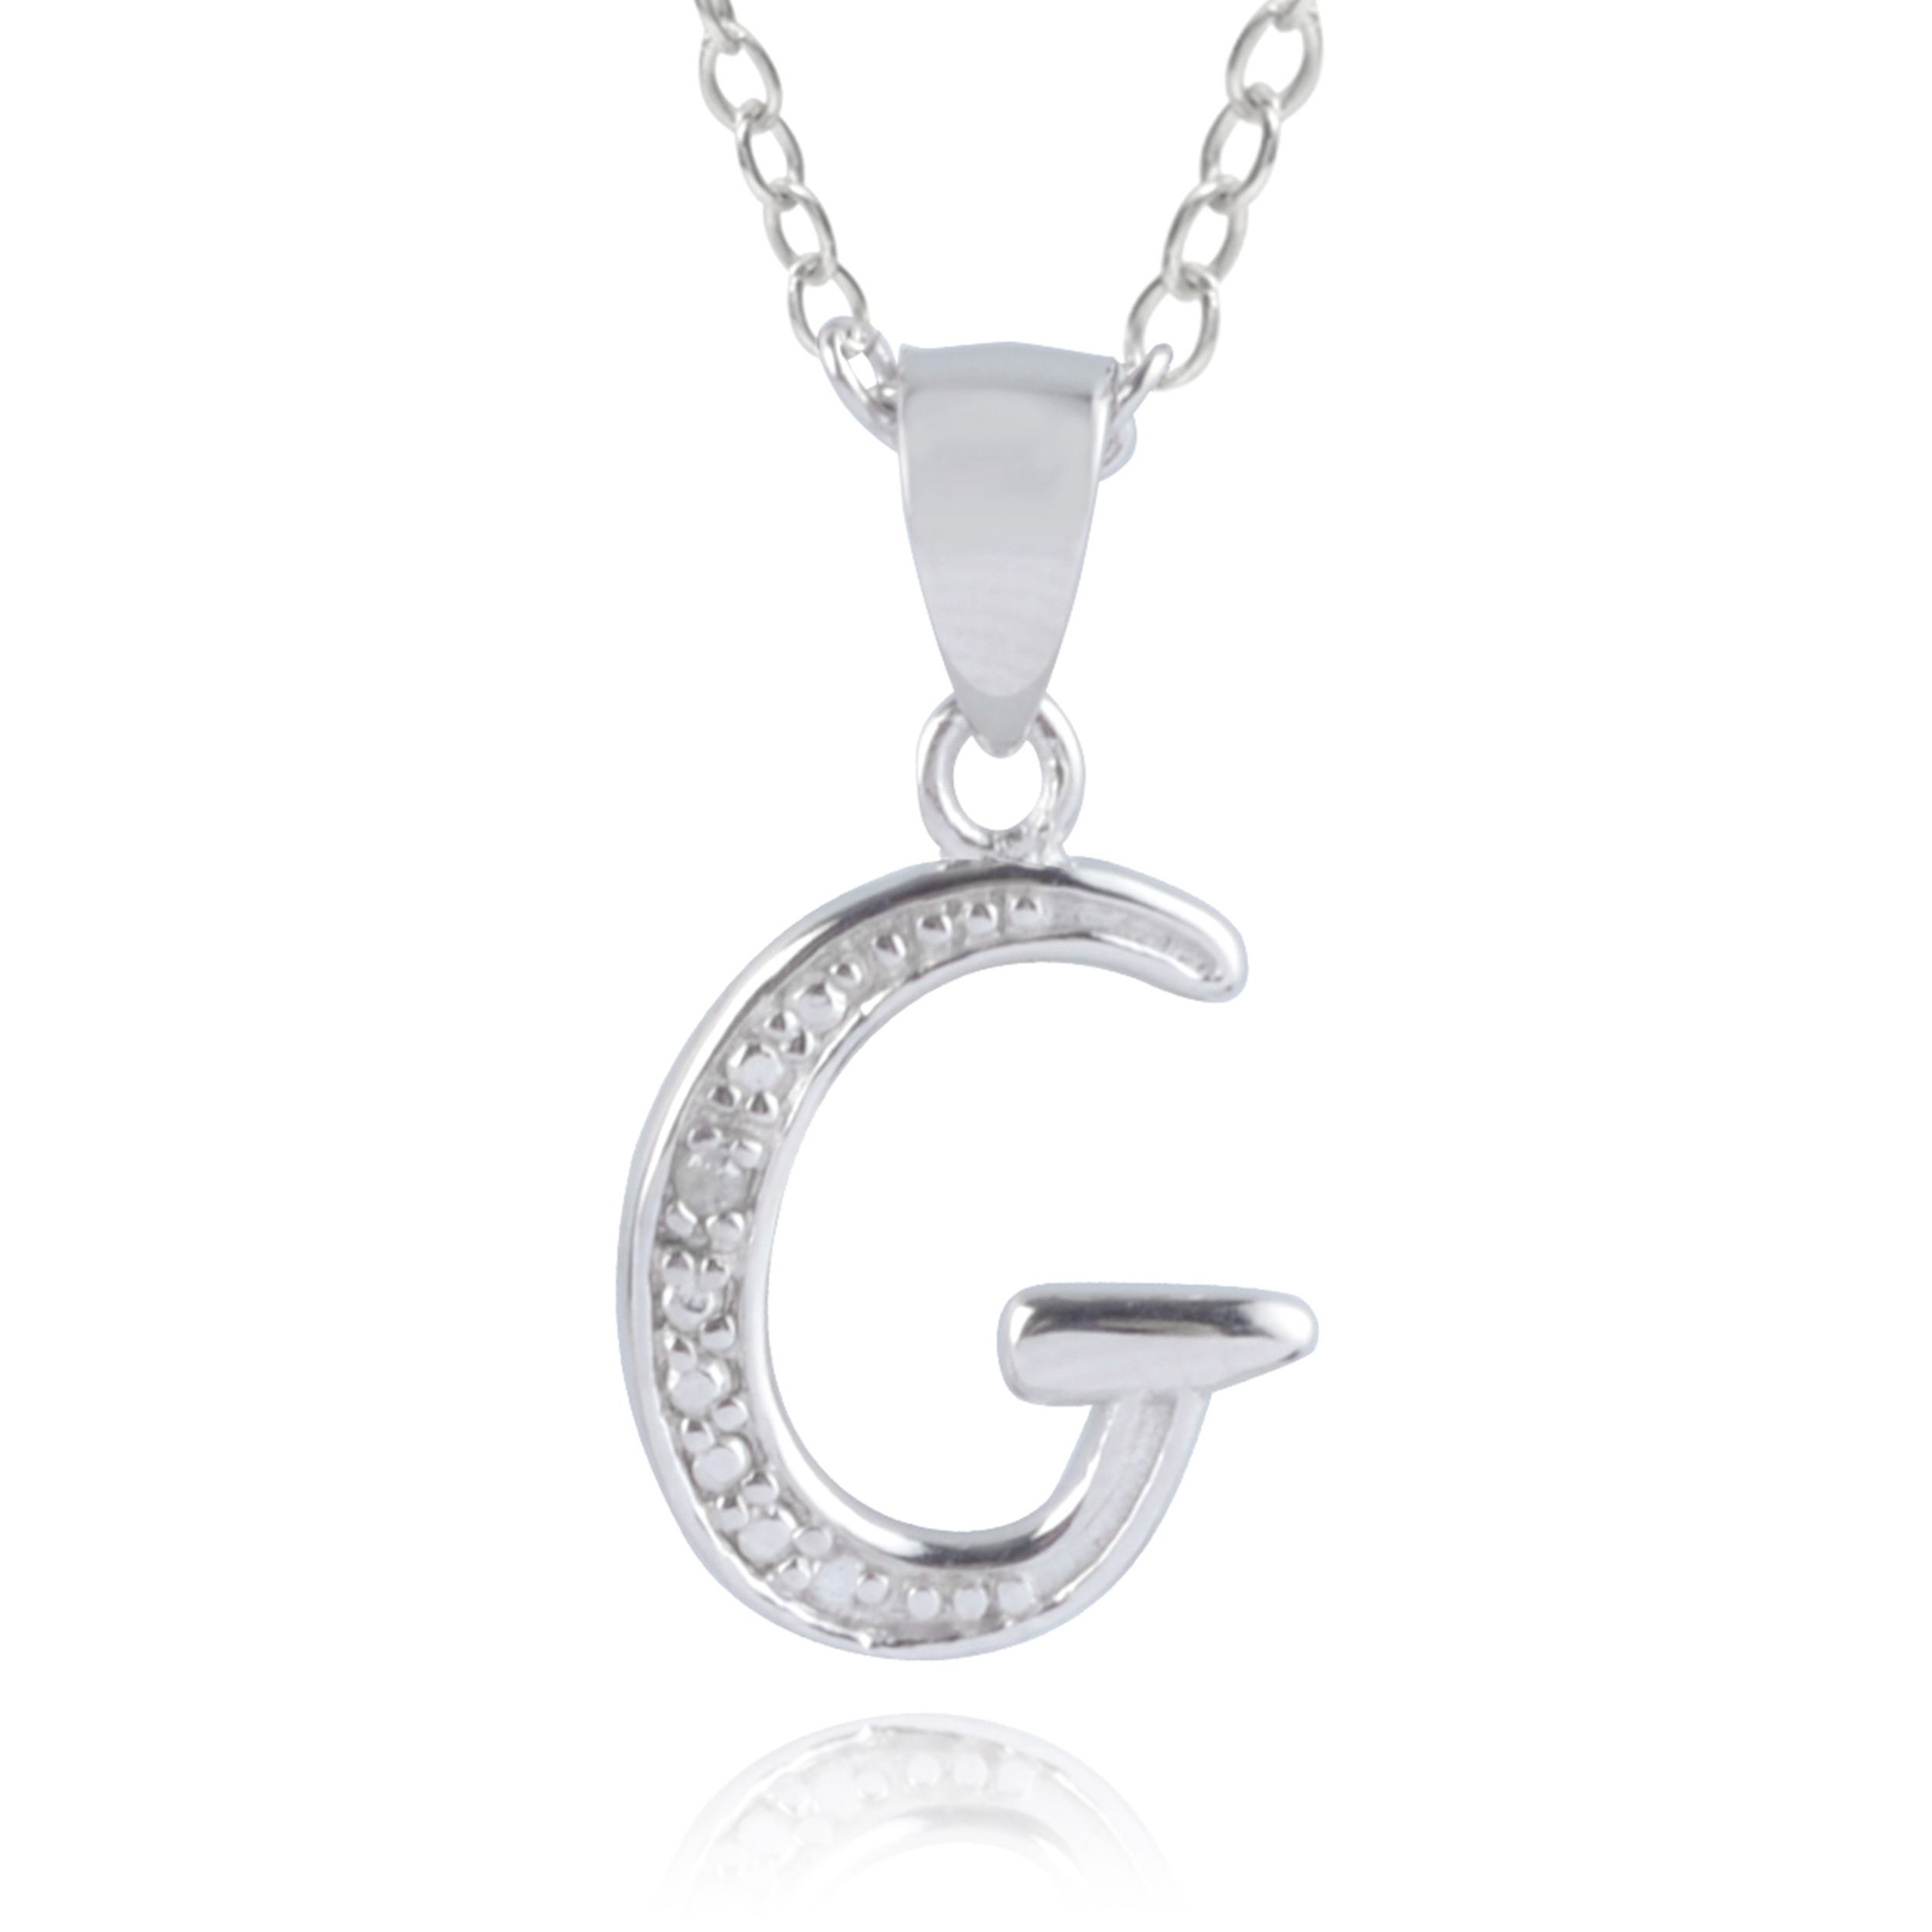 necklace letter necklaces vuitton products pendant enlarged jewelry and louis me g